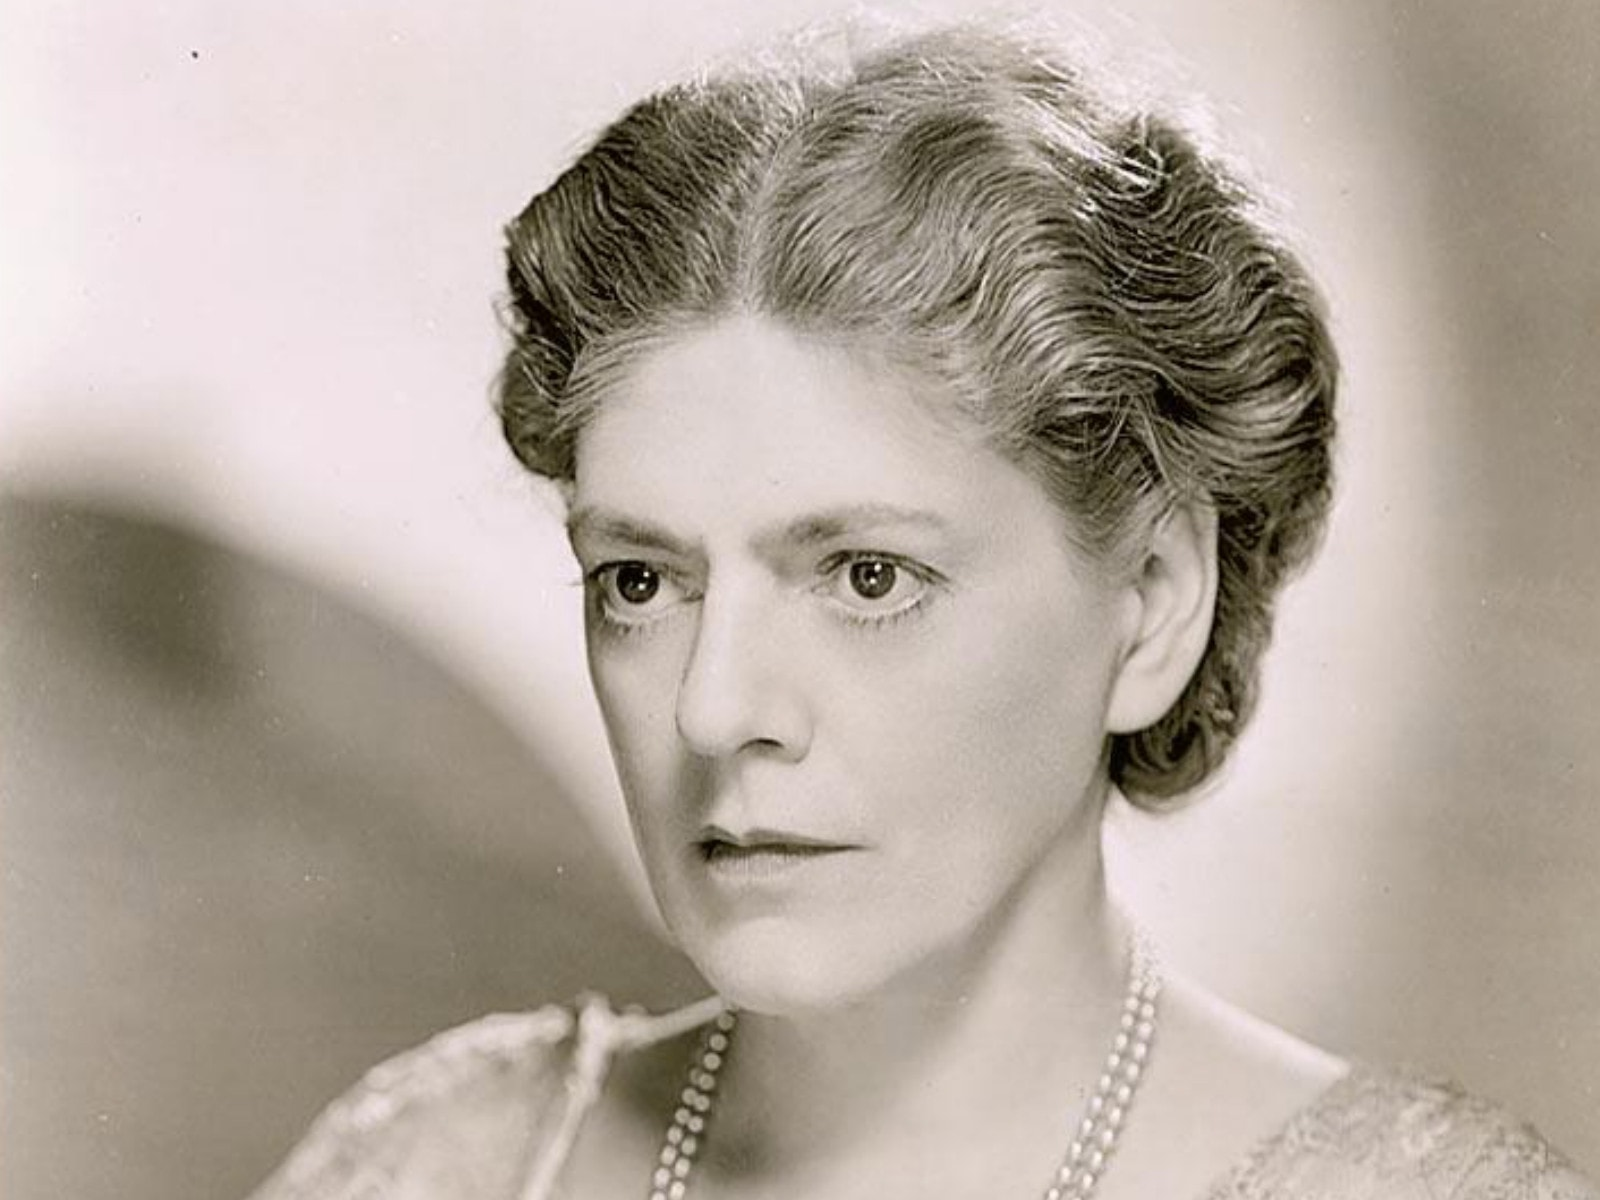 Ethel Barrymore HQ wallpapers